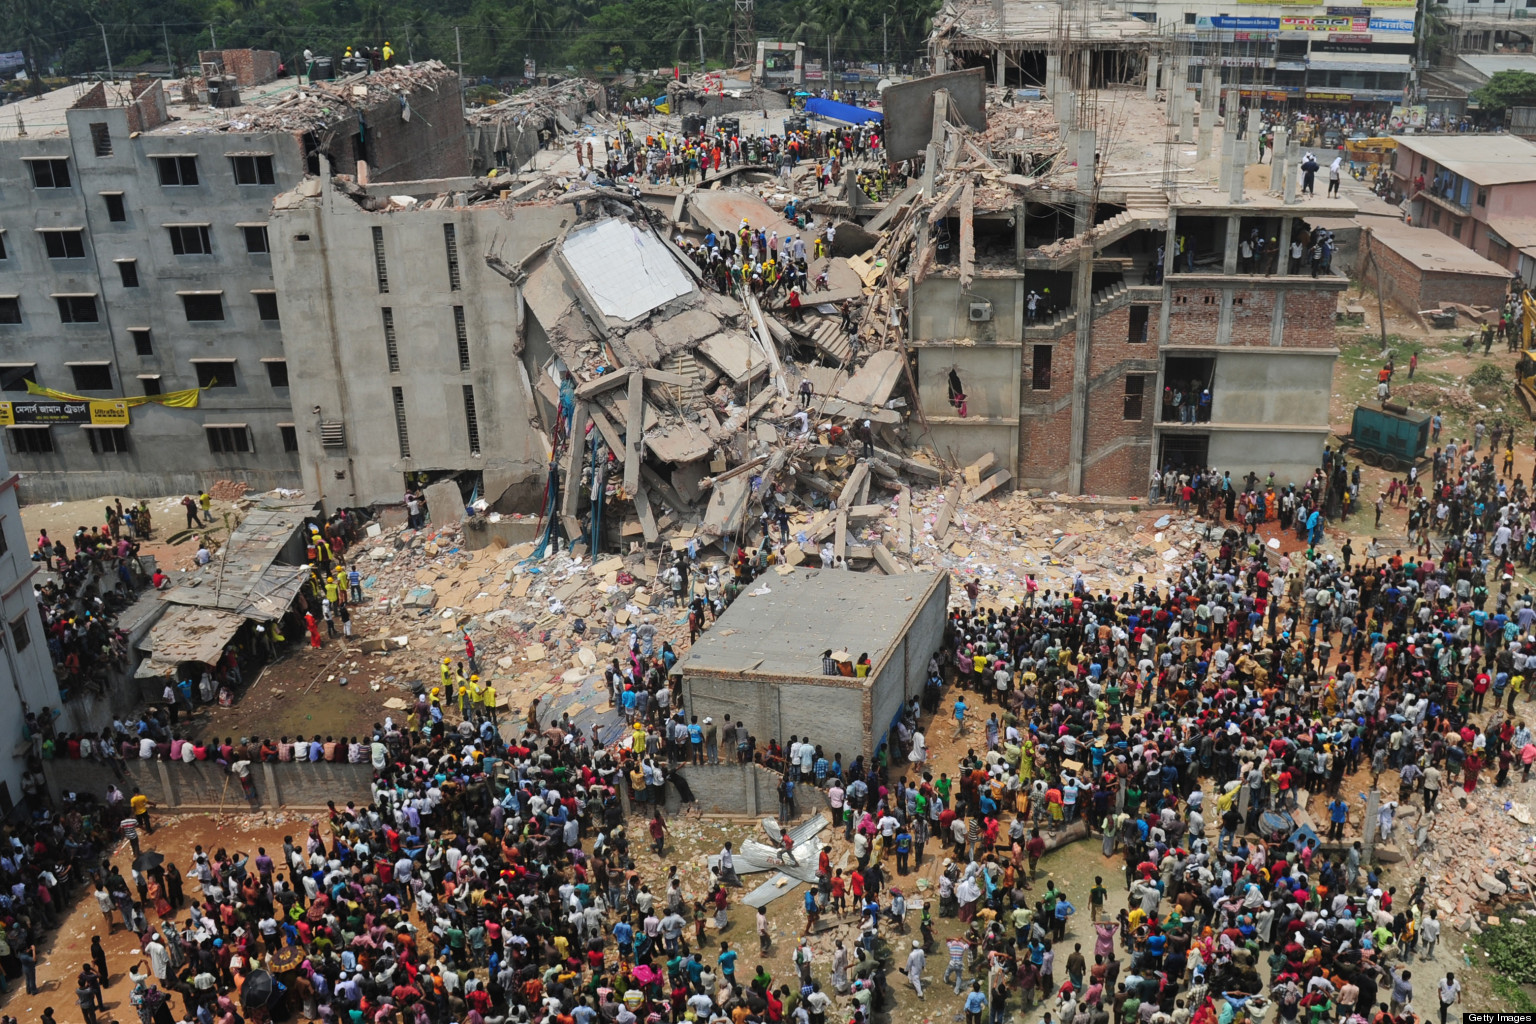 Disaster in Bangladesh: The Collapse of the Rana Plaza Building Harvard Case Solution & Analysis